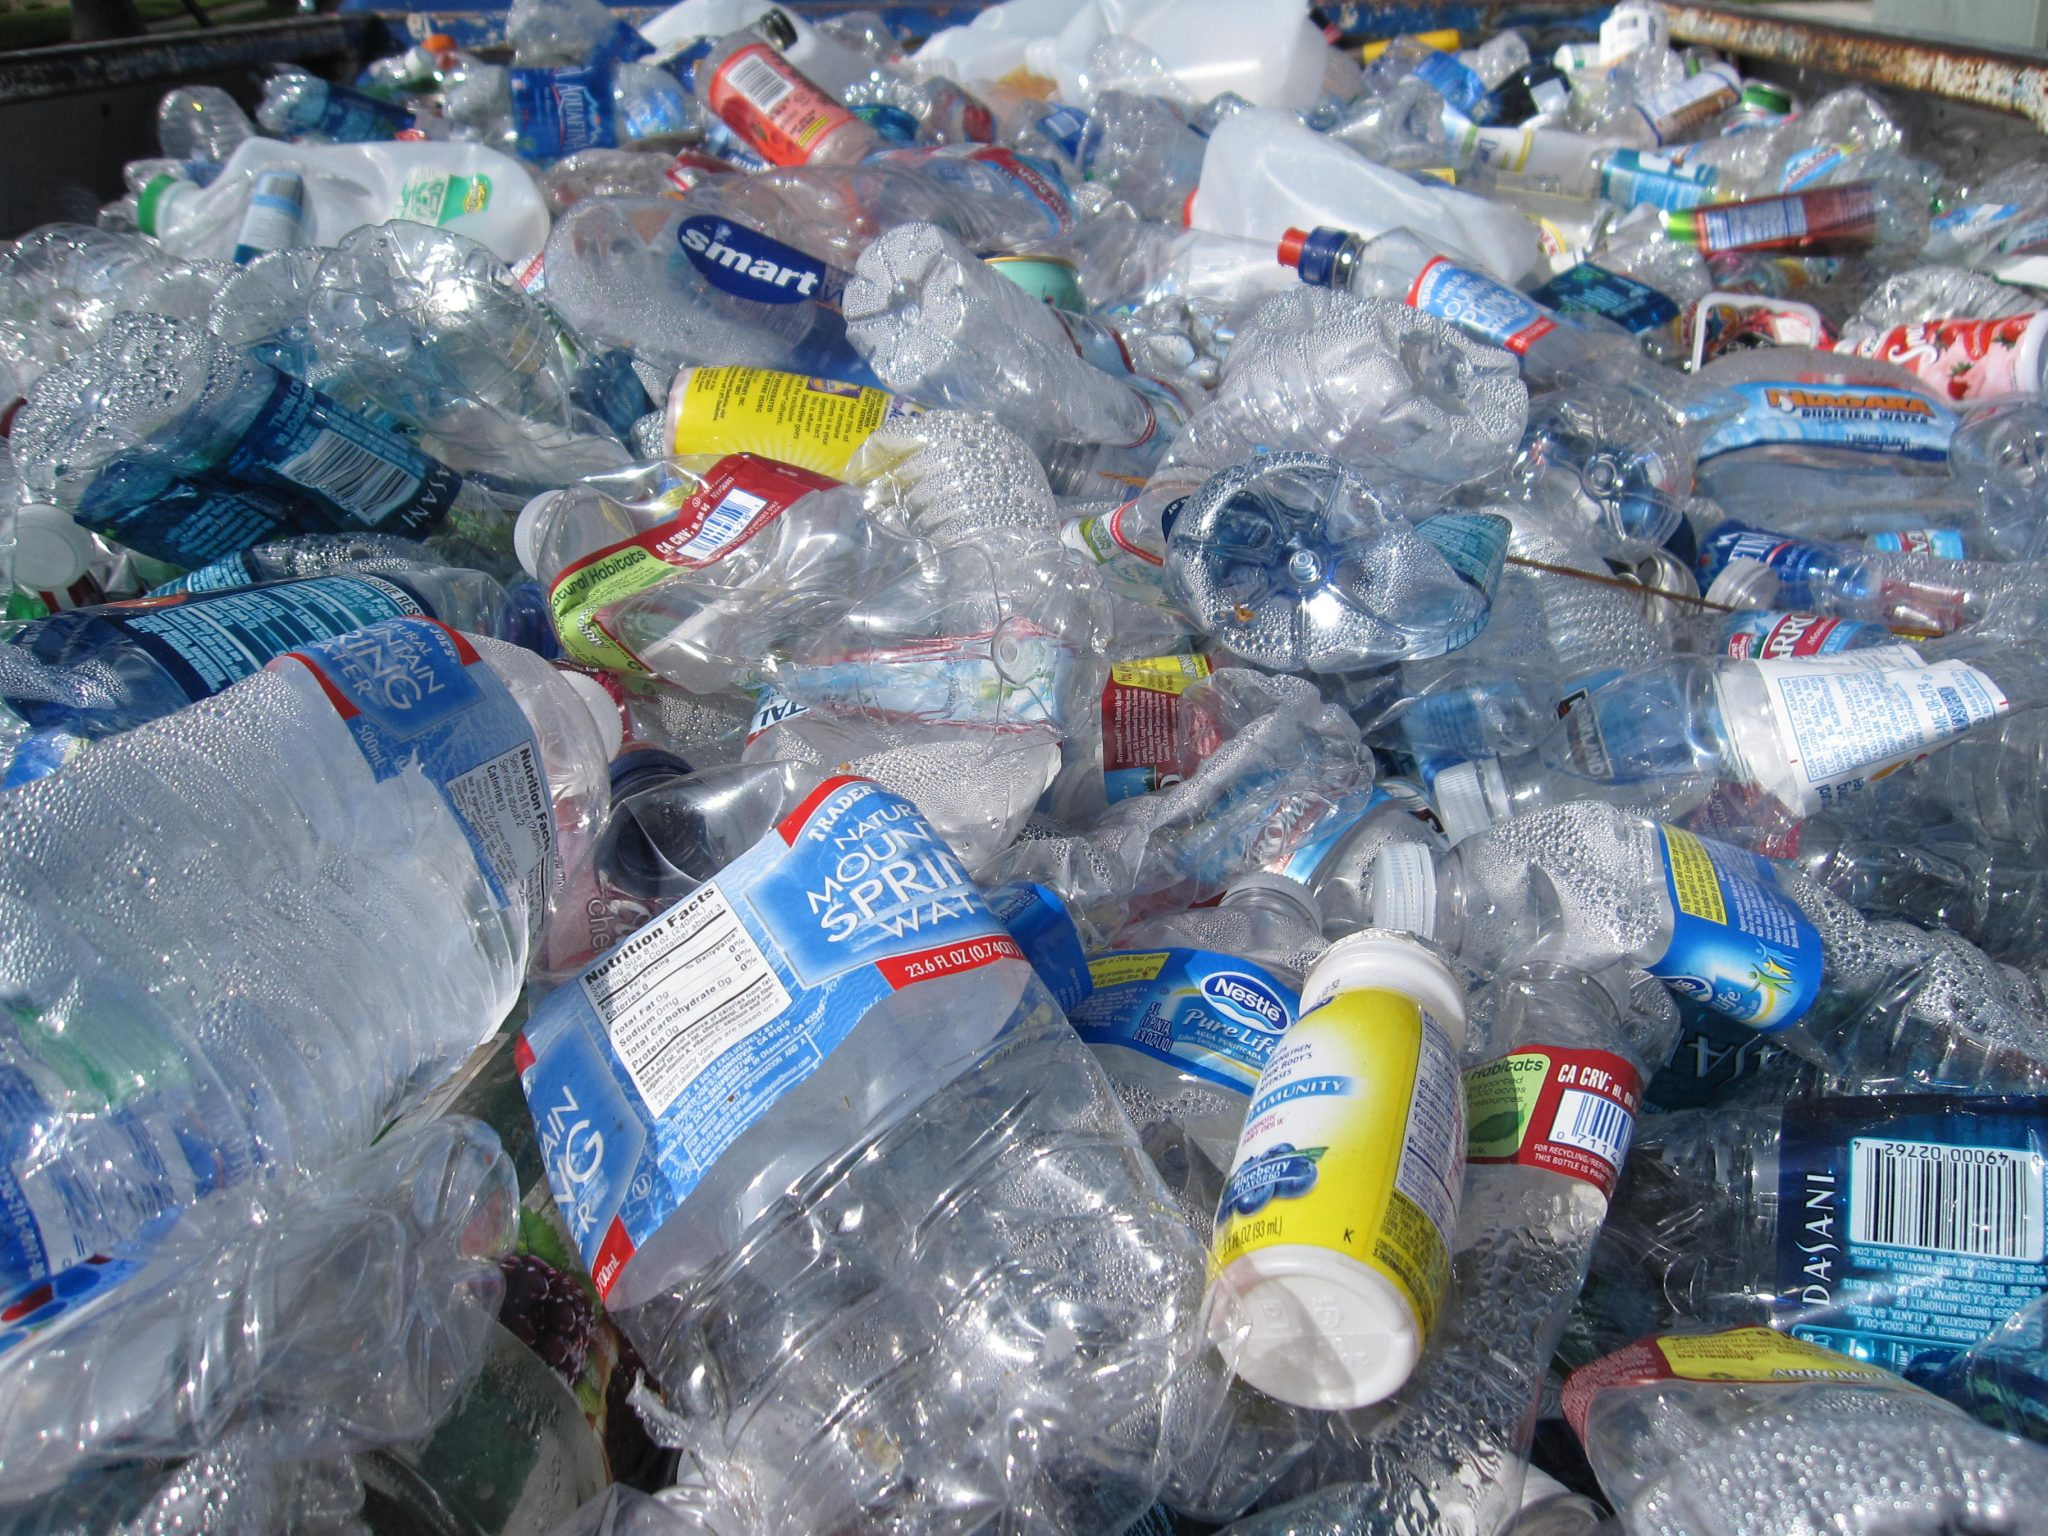 Spread the Know-How, Boost Plastic Recycling